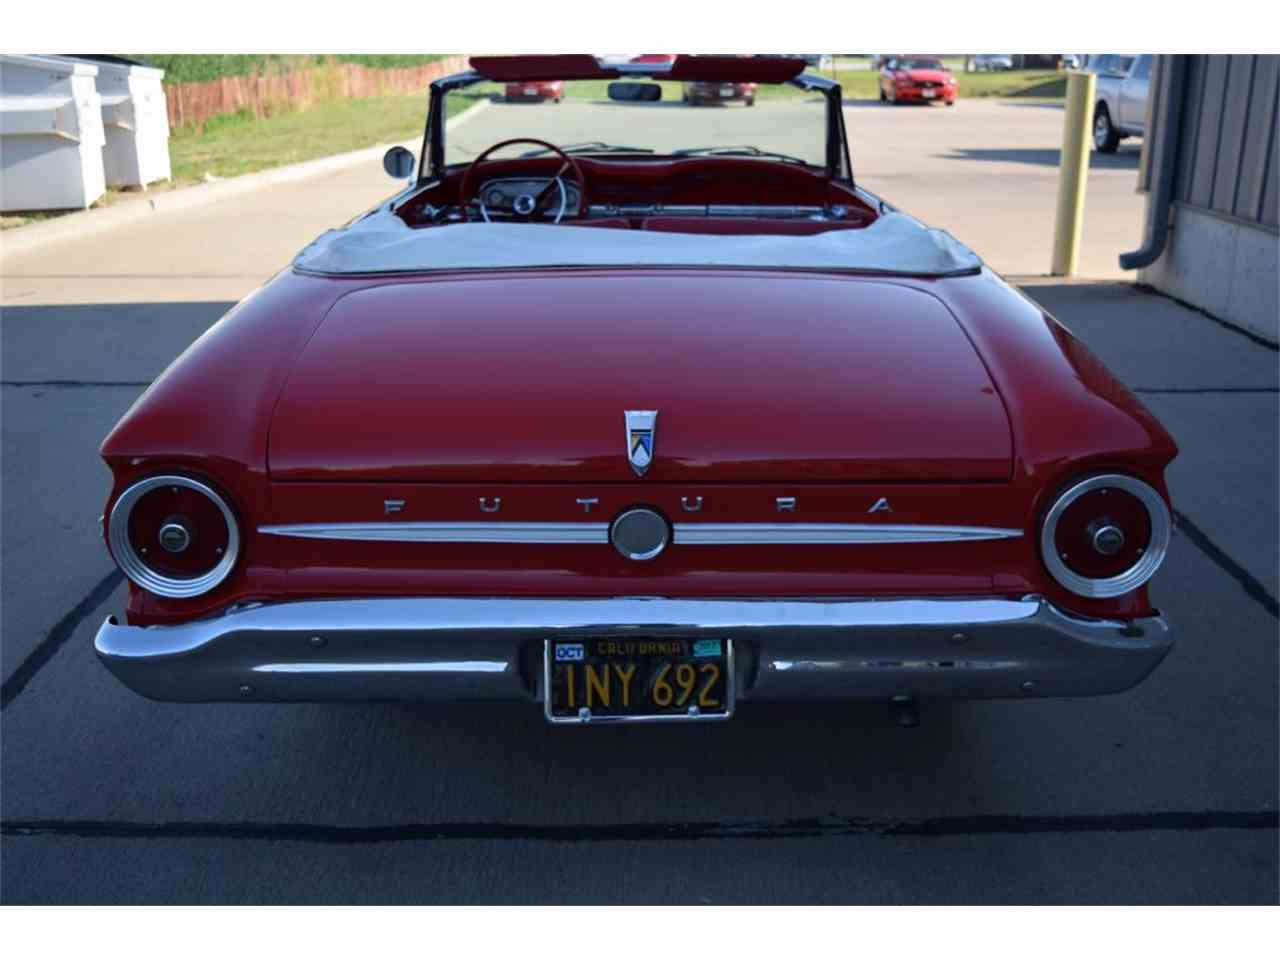 Large Picture of '63 Ford Falcon Futura Offered by Jensen Dealerships - LUN9